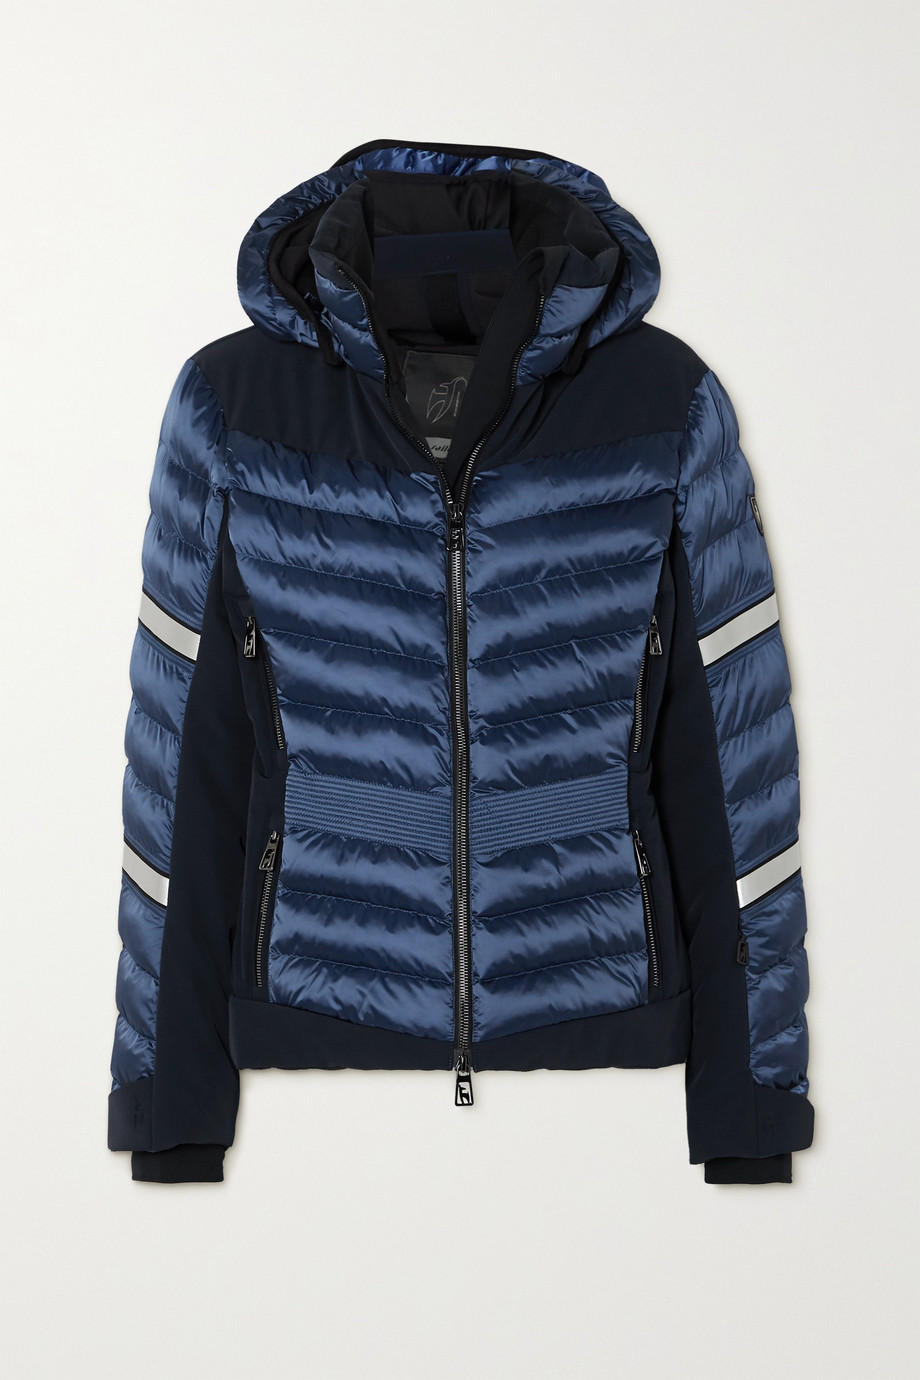 toni sailer Madita Splendid hooded quilted padded ski jacket